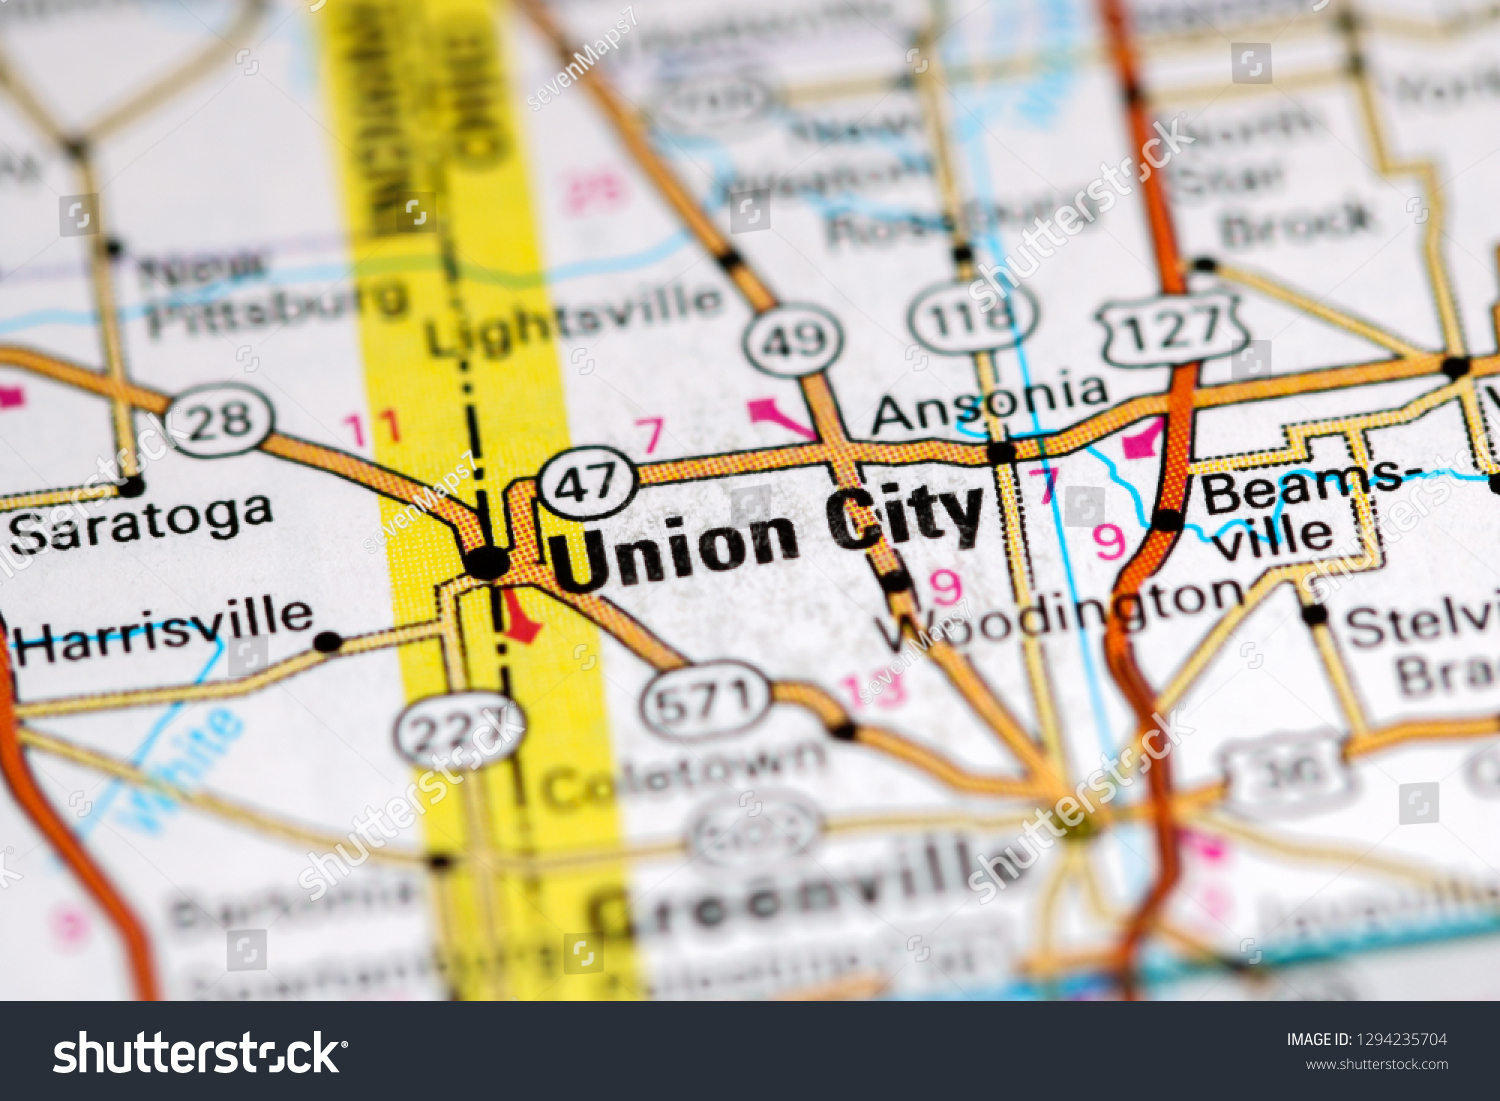 Union Ohio Map.Union City Ohio Usa On Map Stock Photo Edit Now 1294235704